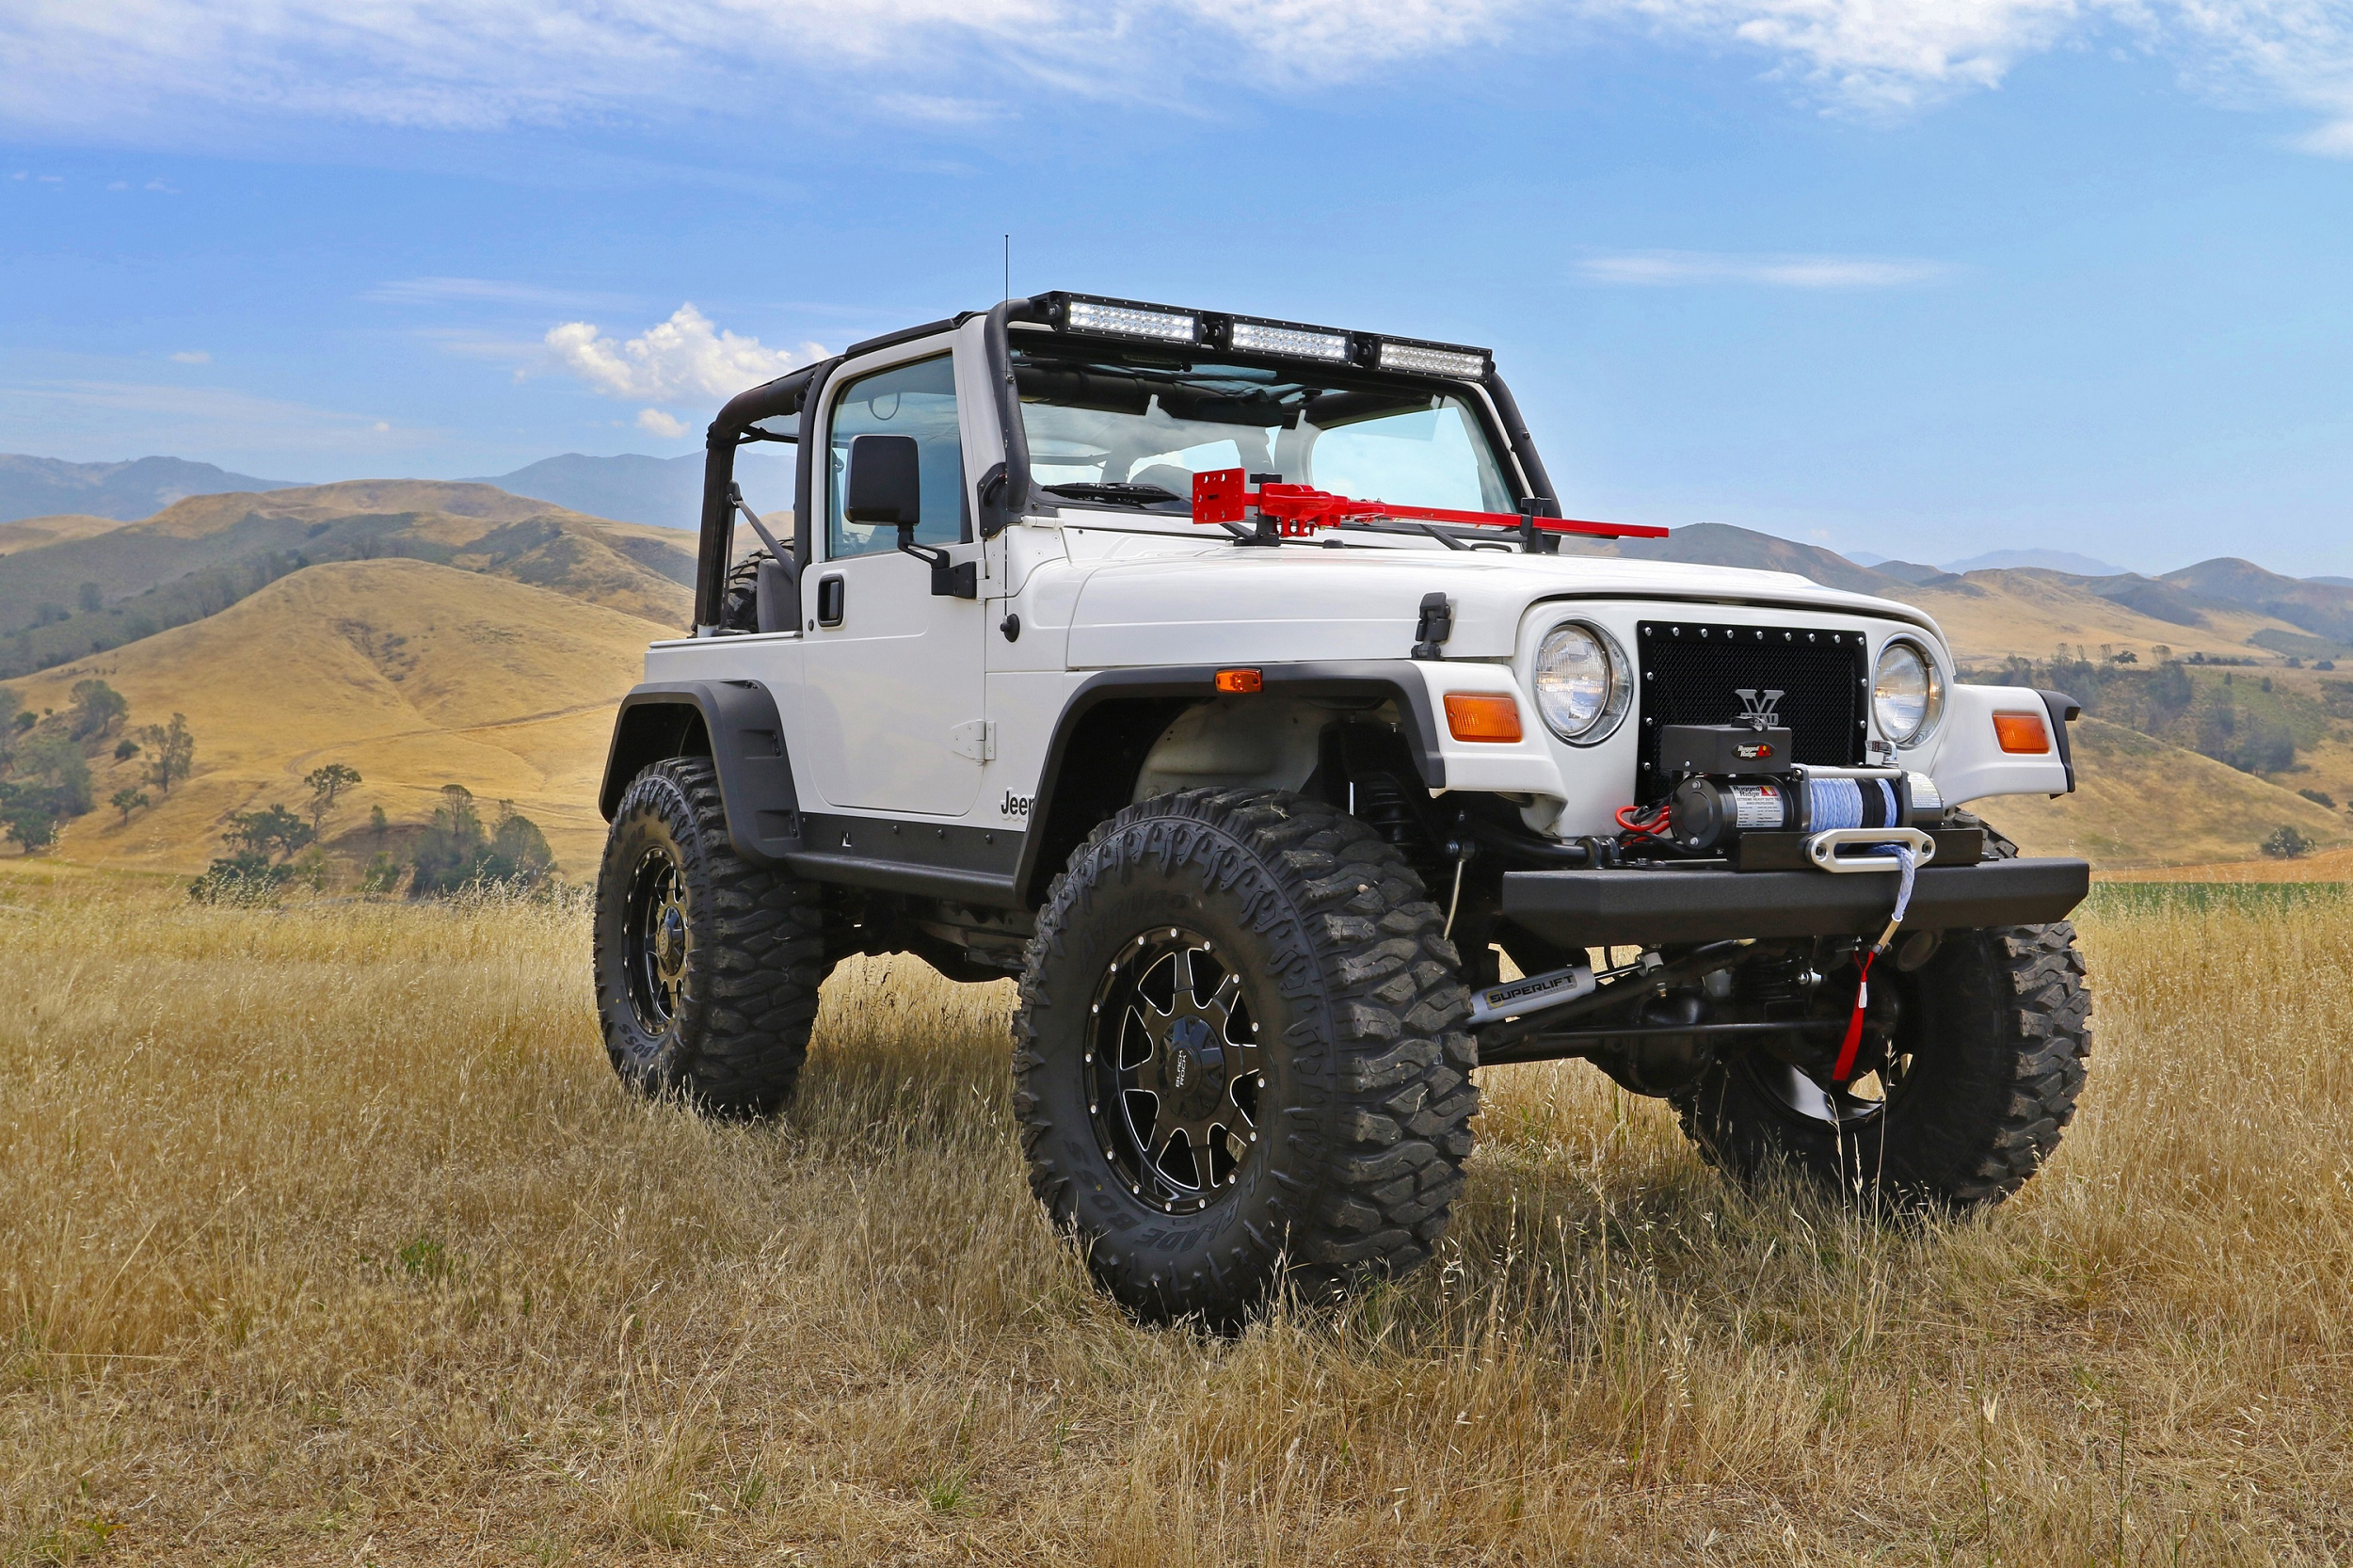 1997 Jeep Wrangler customized by Santa Ynez Valley Union High School (photo credit- SEMA)